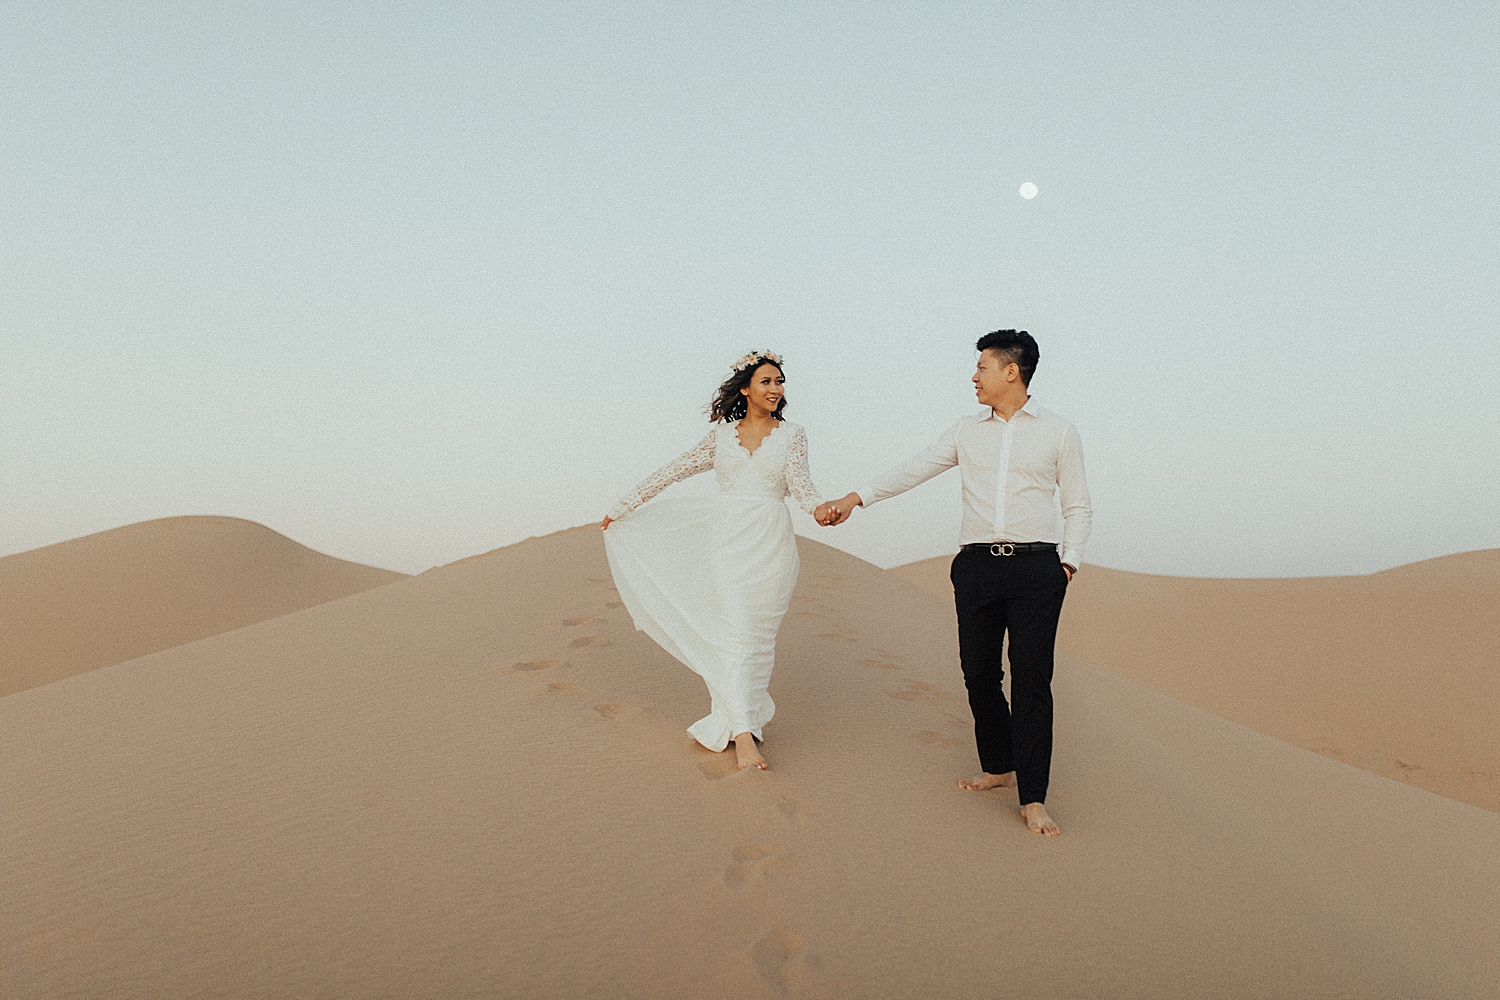 SoCal Elopement Photographer Rachel Wakefield Glamis Sand Dunes Engagement Photography Joshua Tree Su x Ryan-143.jpg